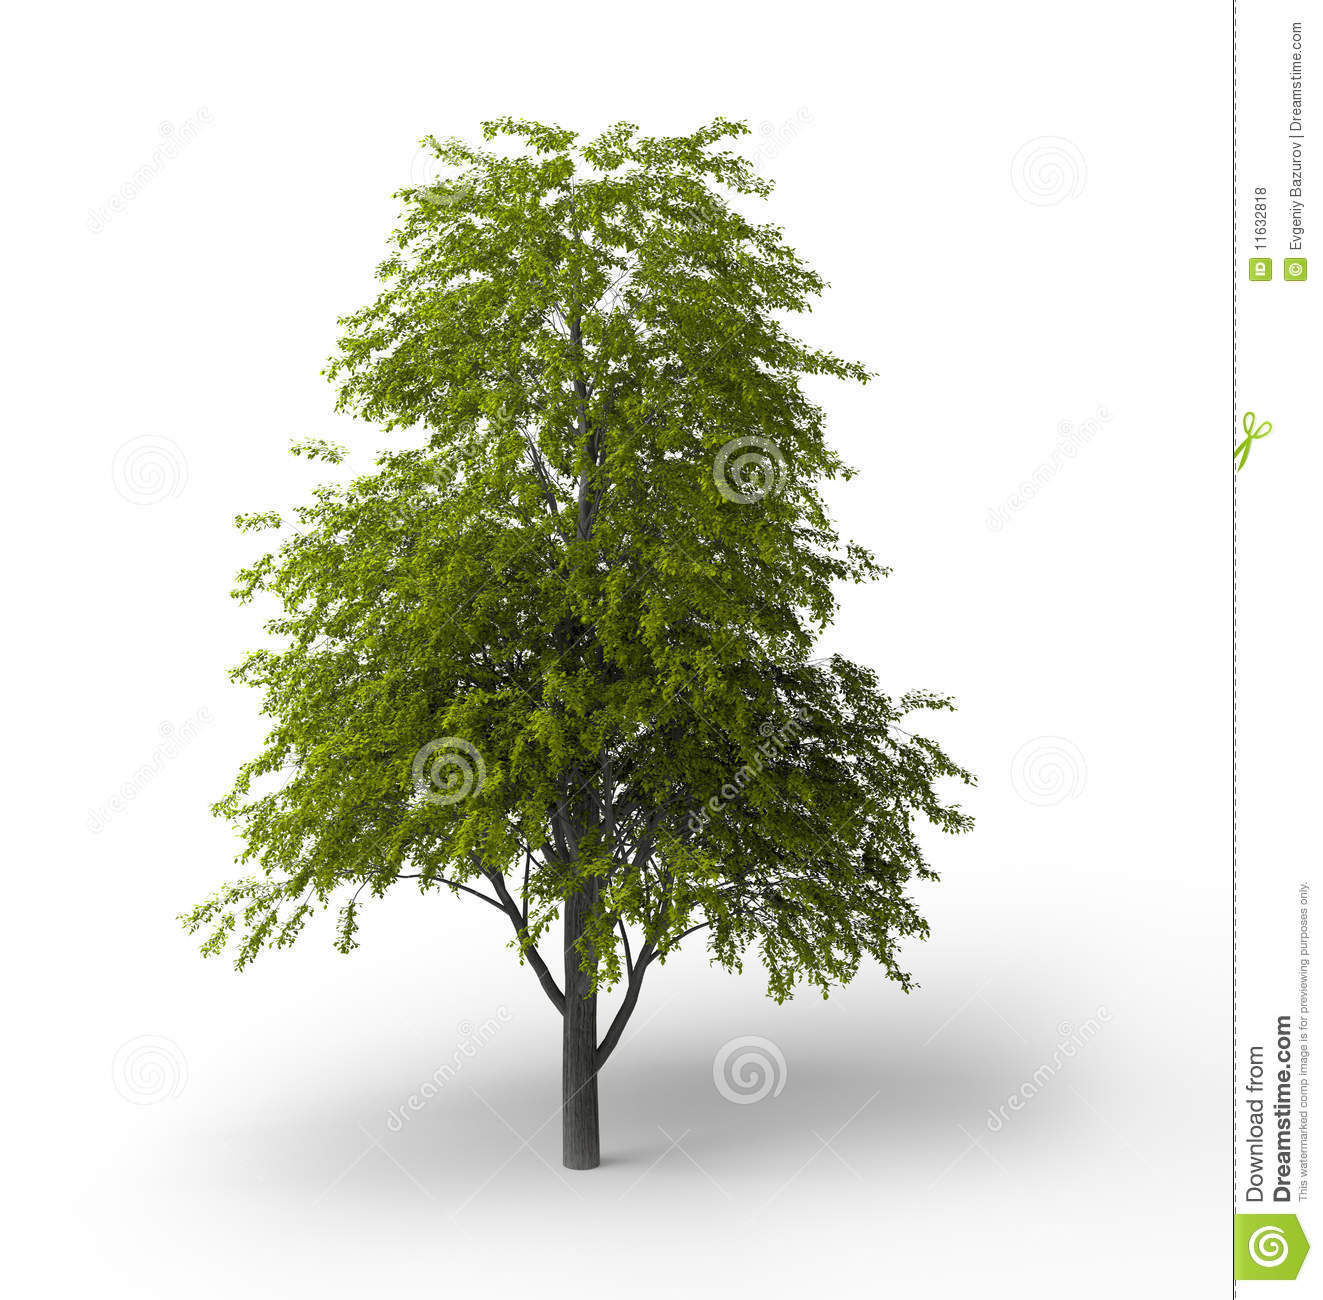 Tilia clipart #18, Download drawings